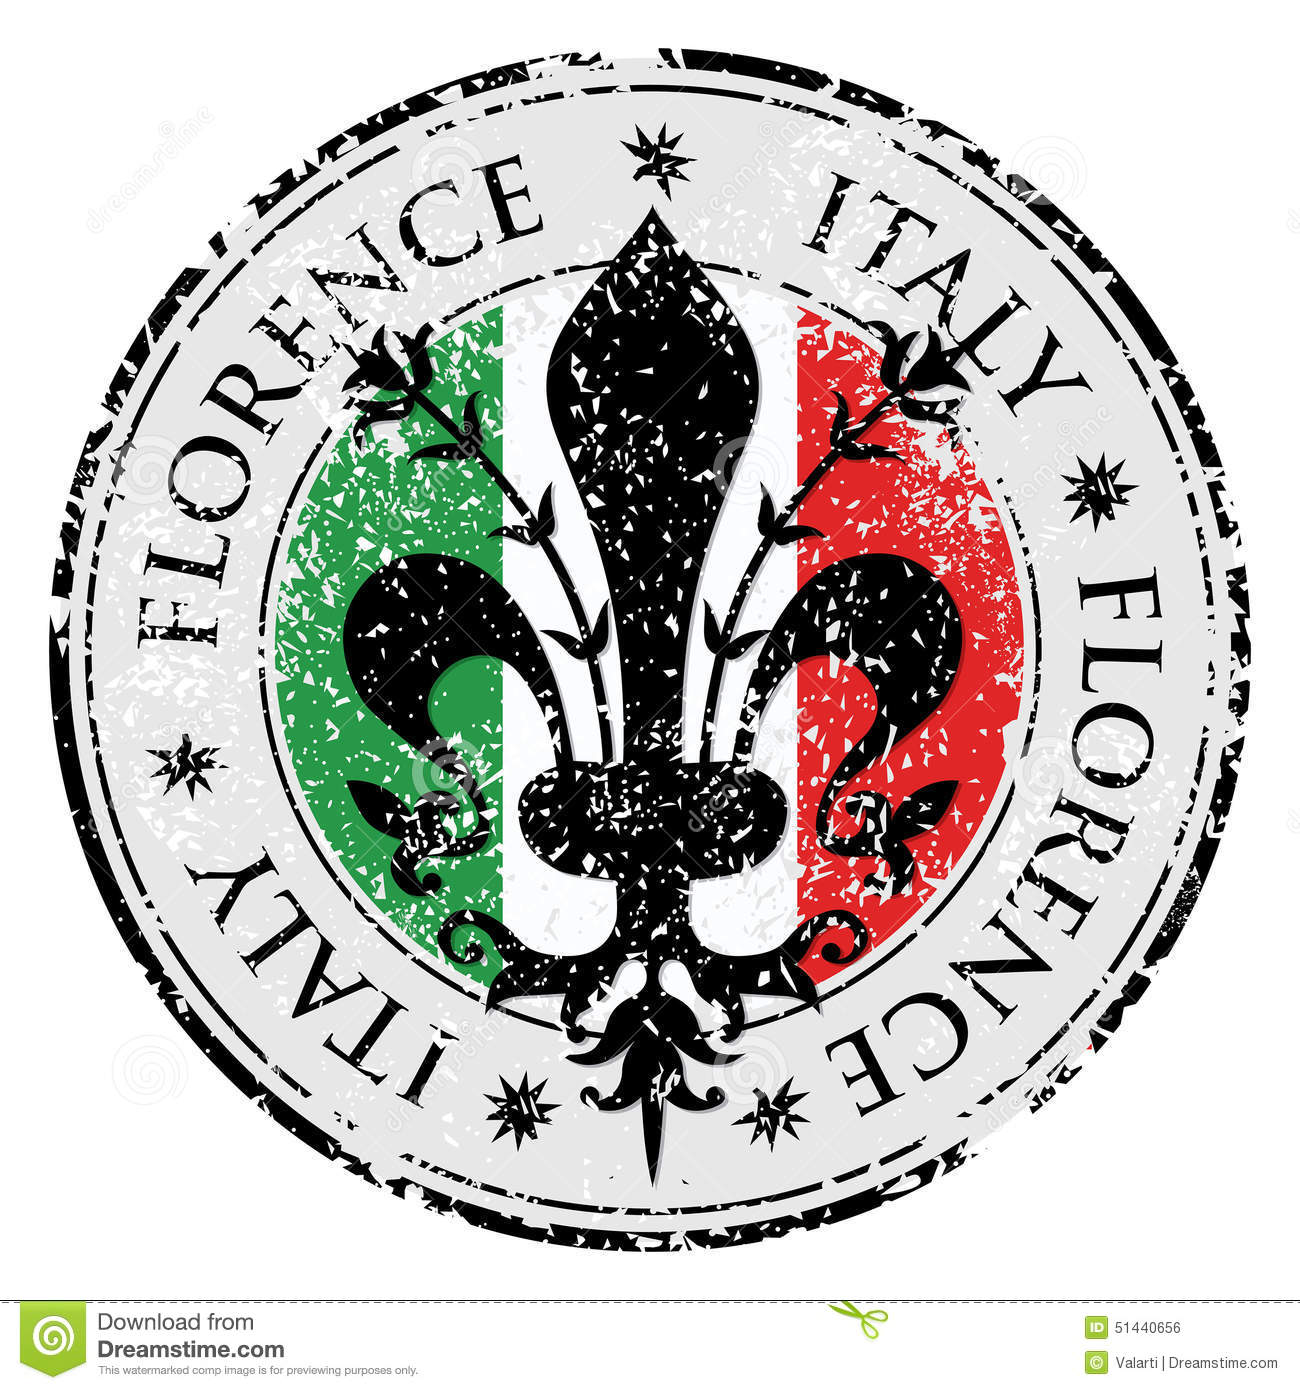 Travel destination grunge rubber stamp with symbol of Florence, Italy inside,the fleur de lis of Florence